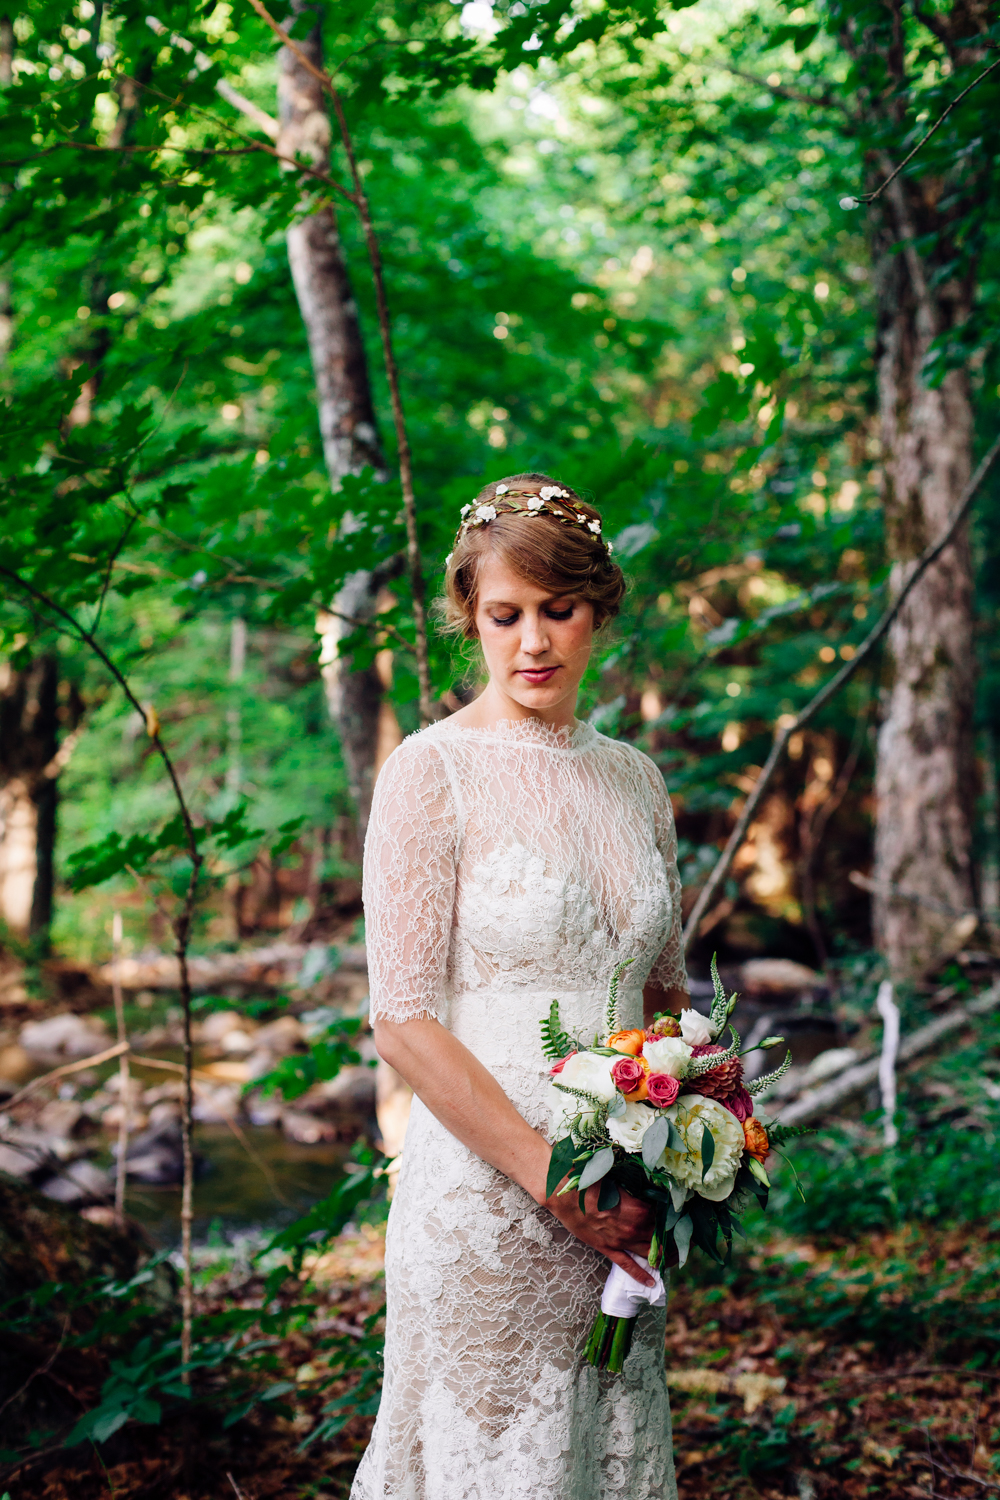 A bride poses with her bouquet in upstate New York